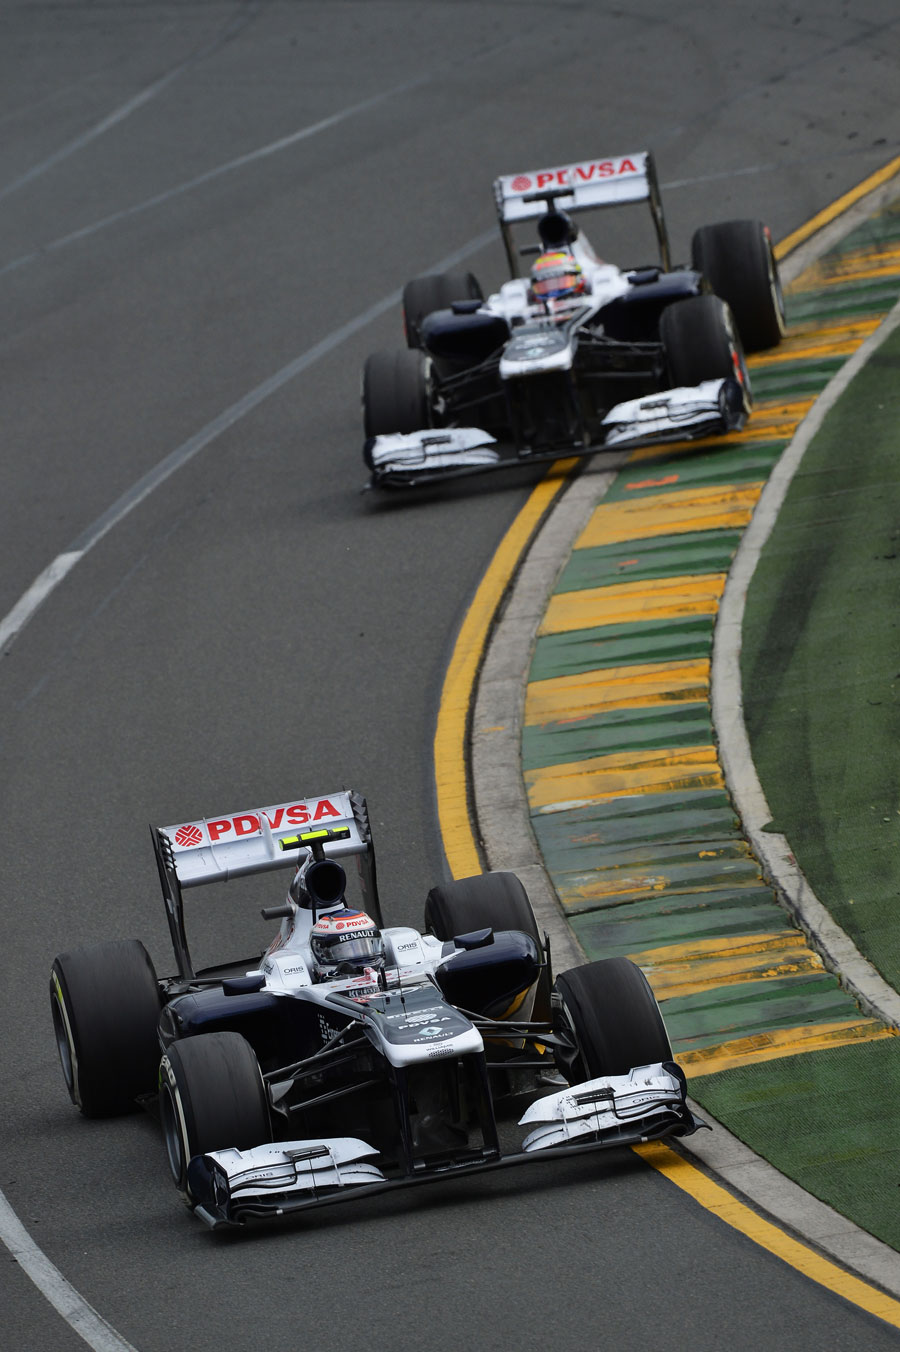 Valtteri Bottas leads team-mate Pastor Maldonado